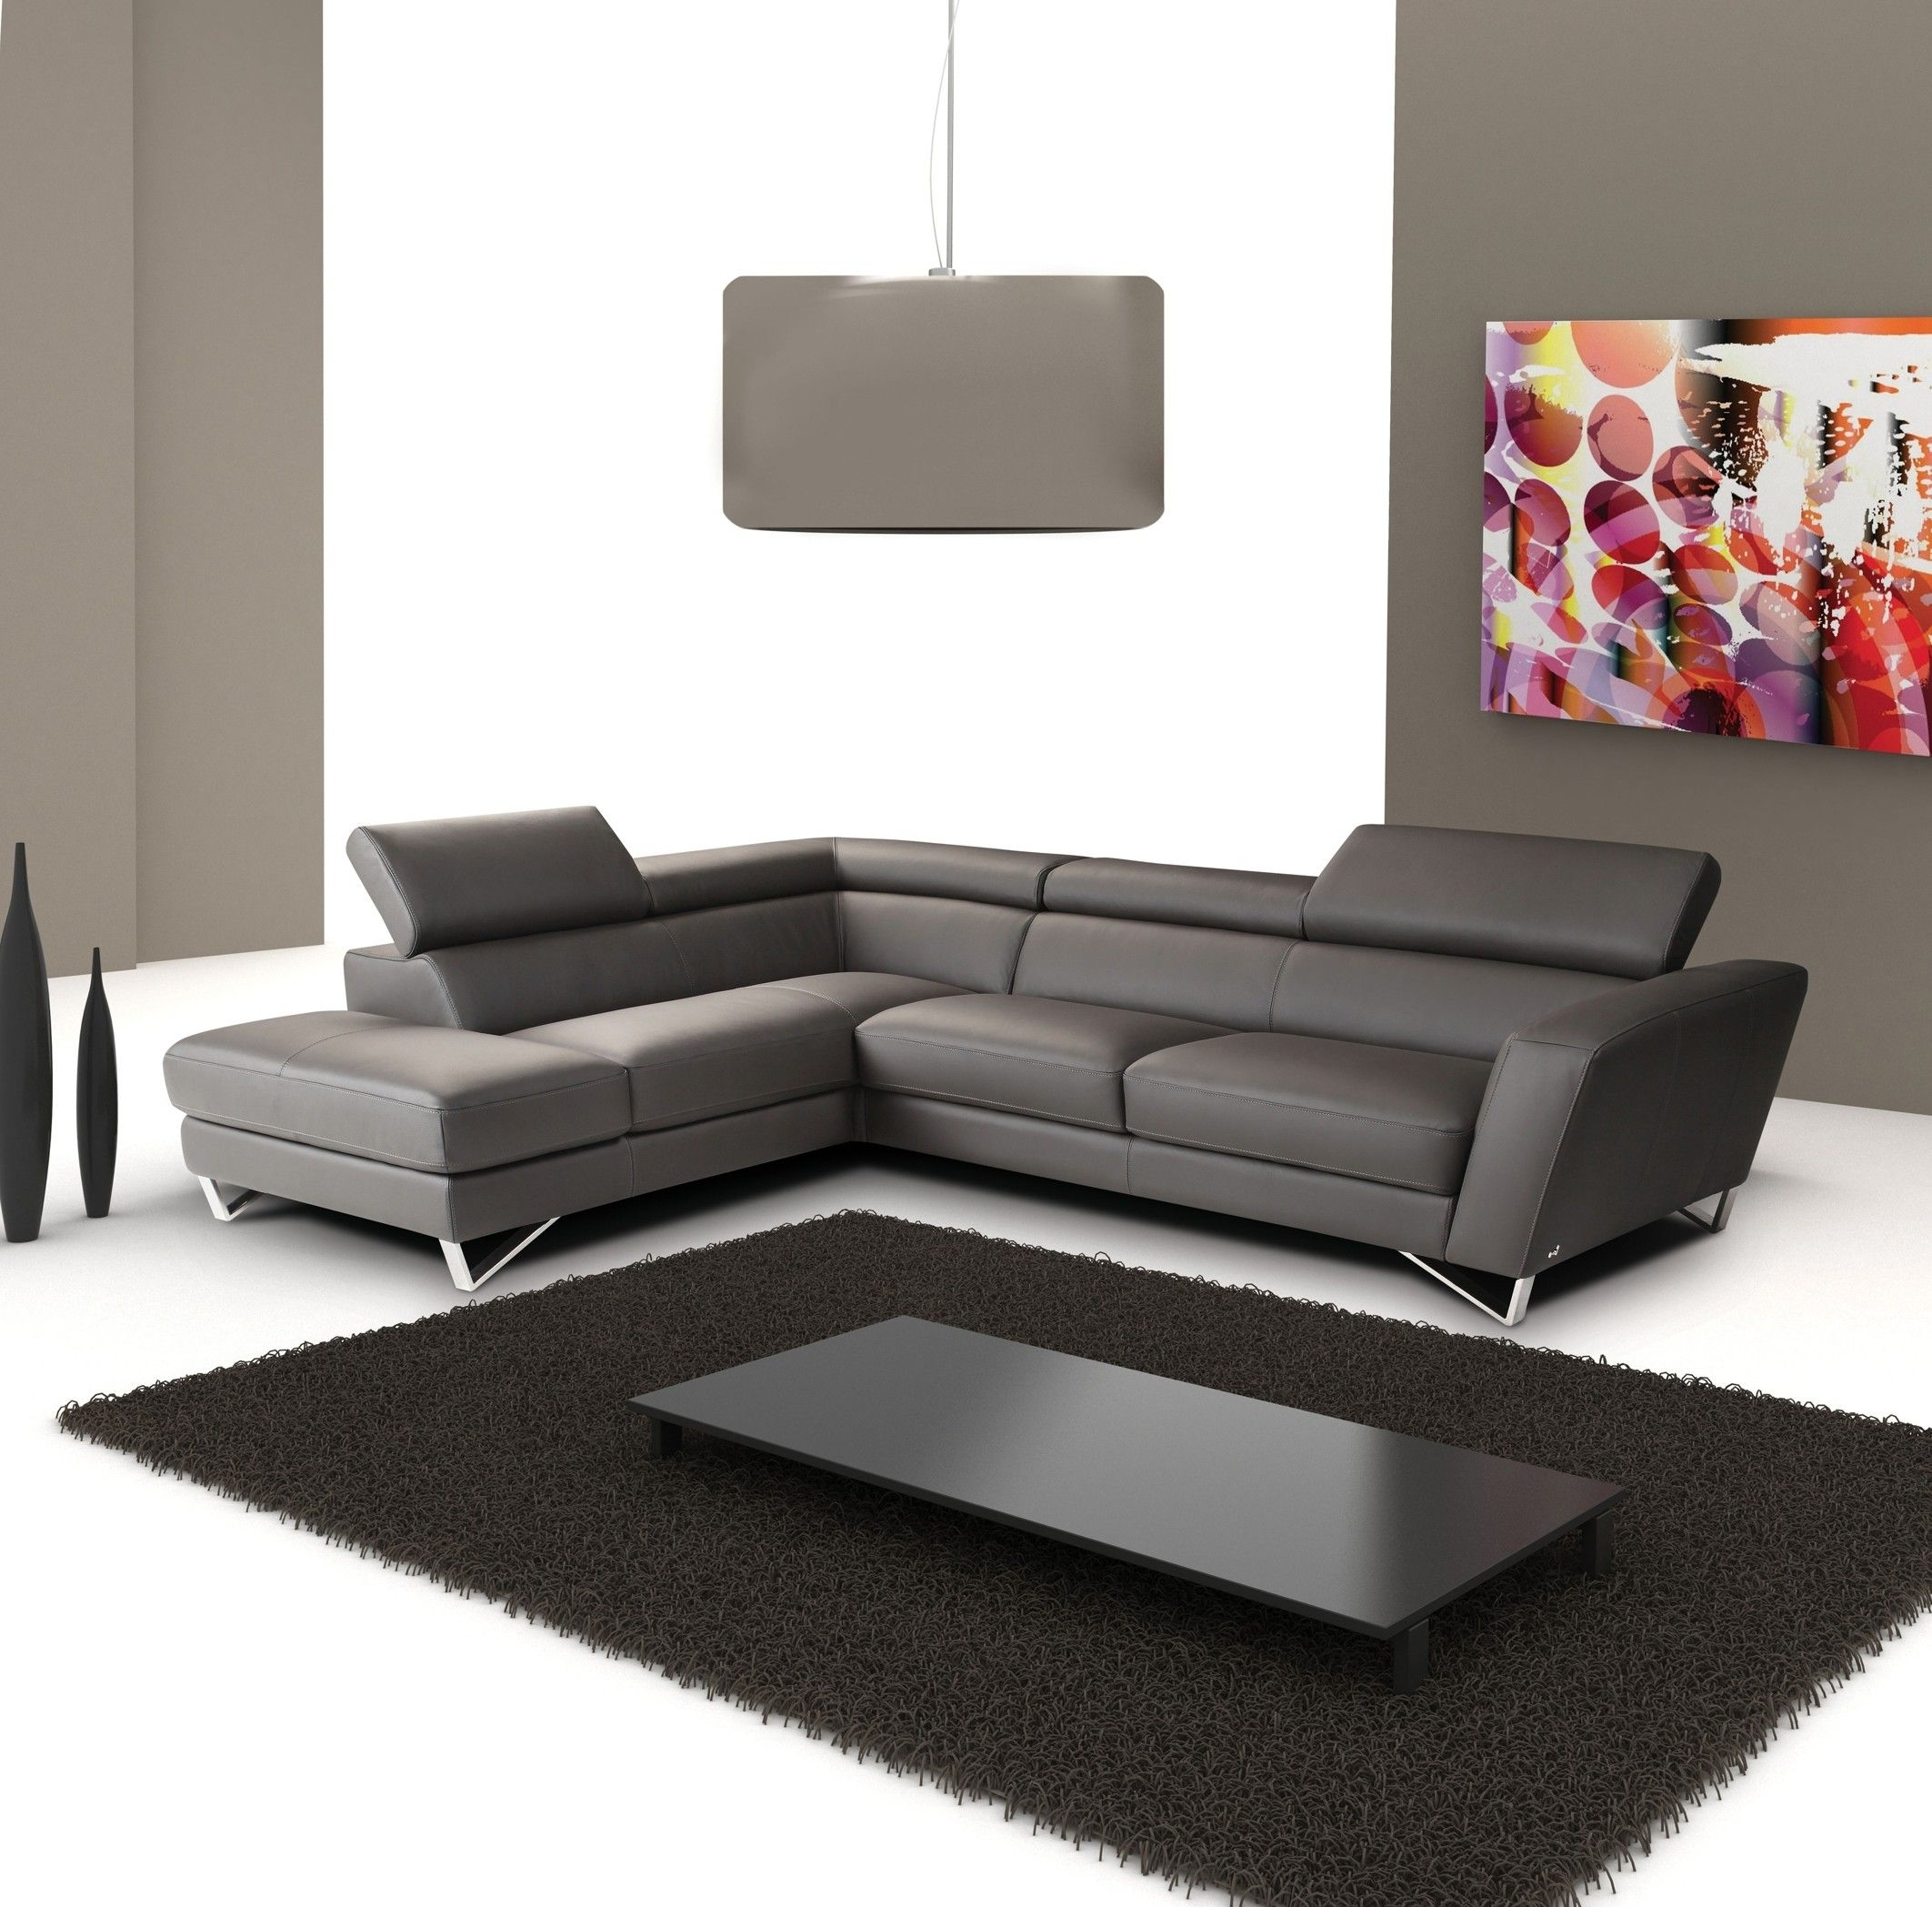 Contemporary Sectional Sofas | Contemporary Sofa | Pinterest | Sofa inside London Optical Reversible Sofa Chaise Sectionals (Image 9 of 30)